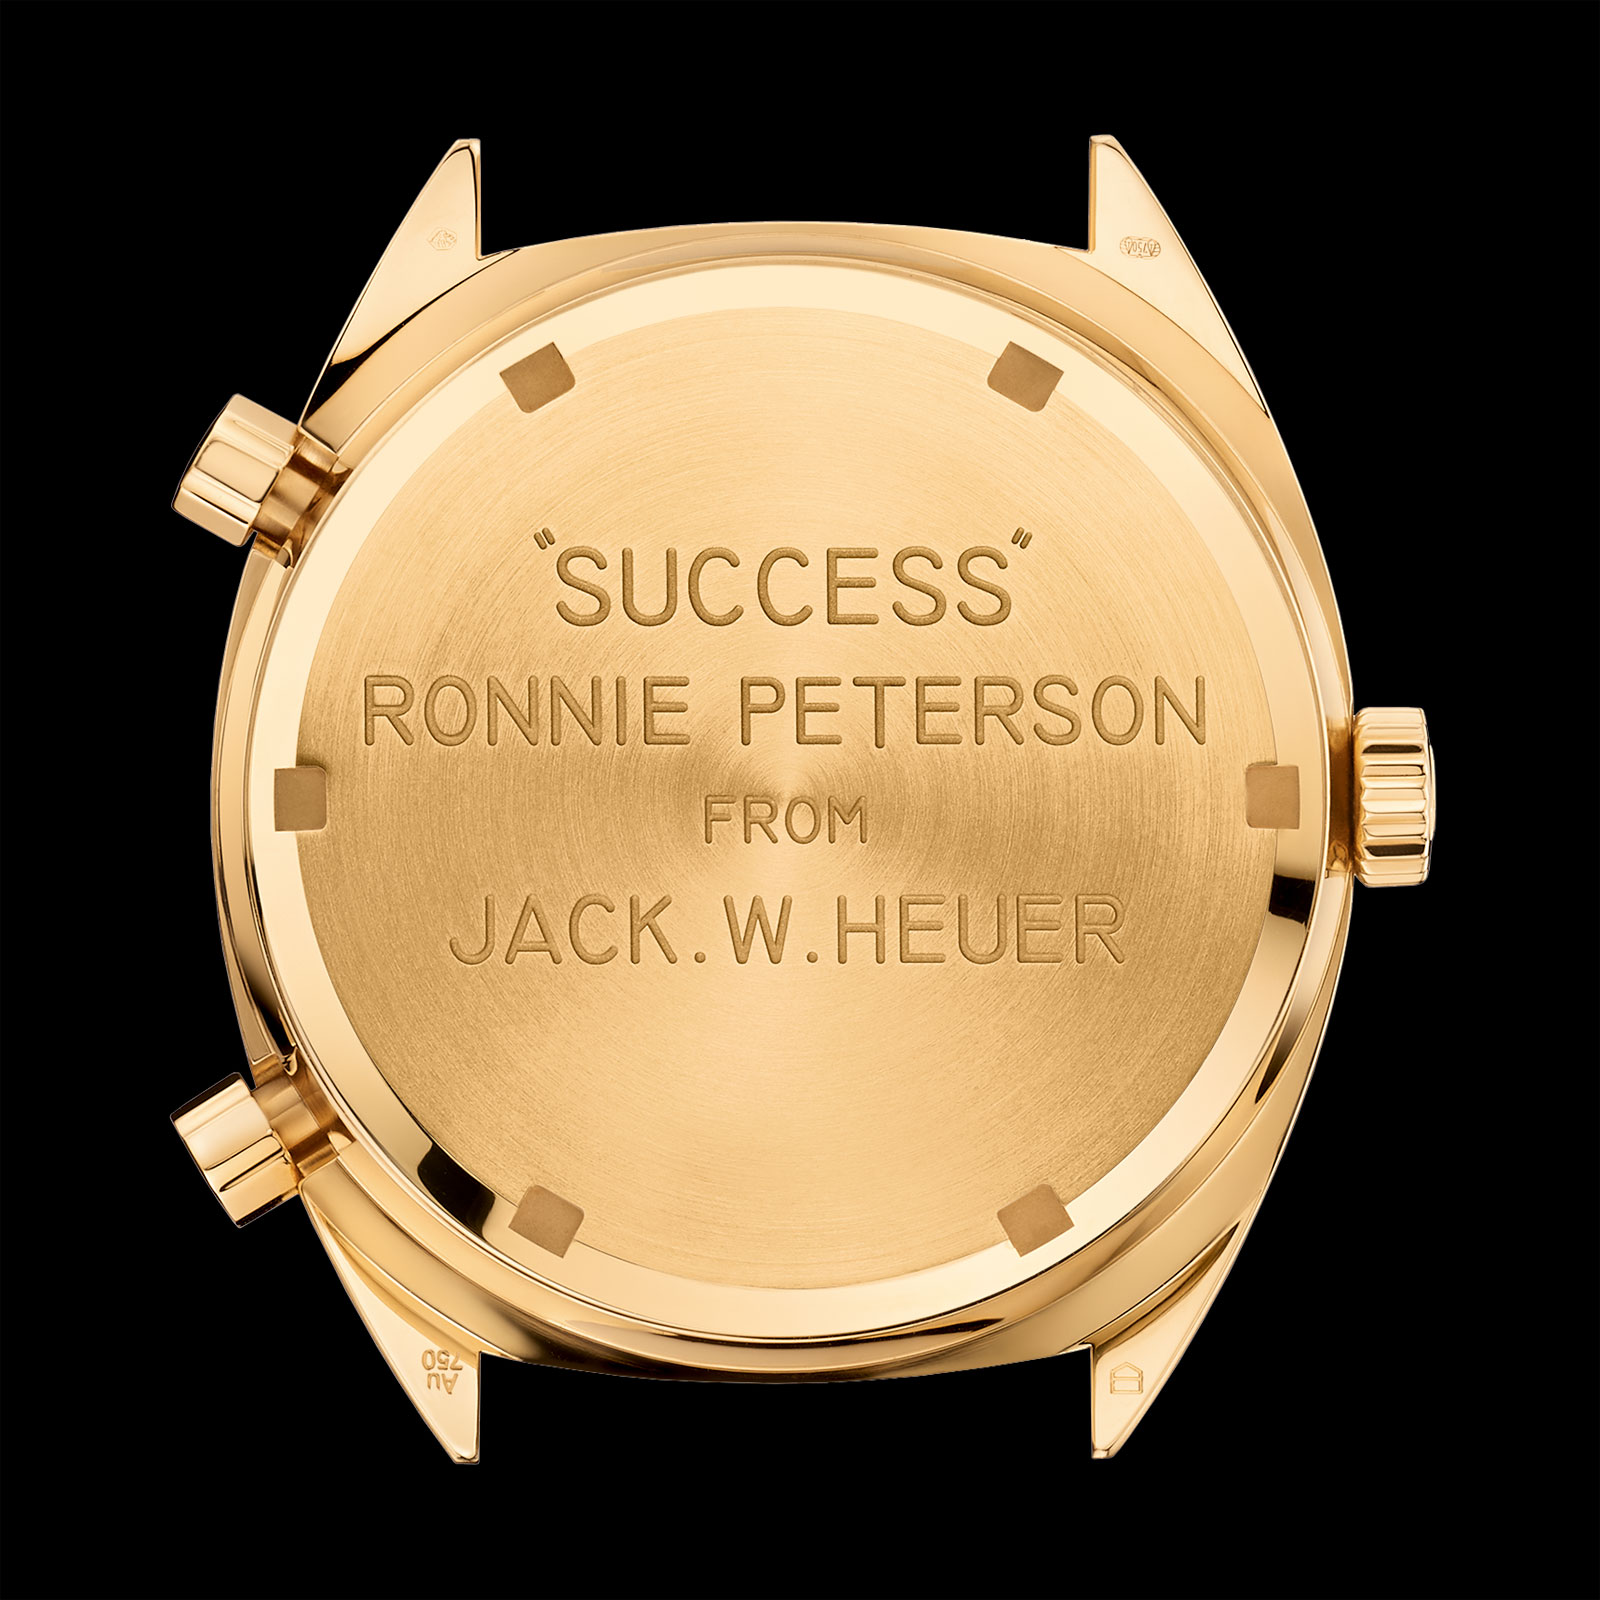 TAG Heuer Carrera Ronnie Peterson remake 3